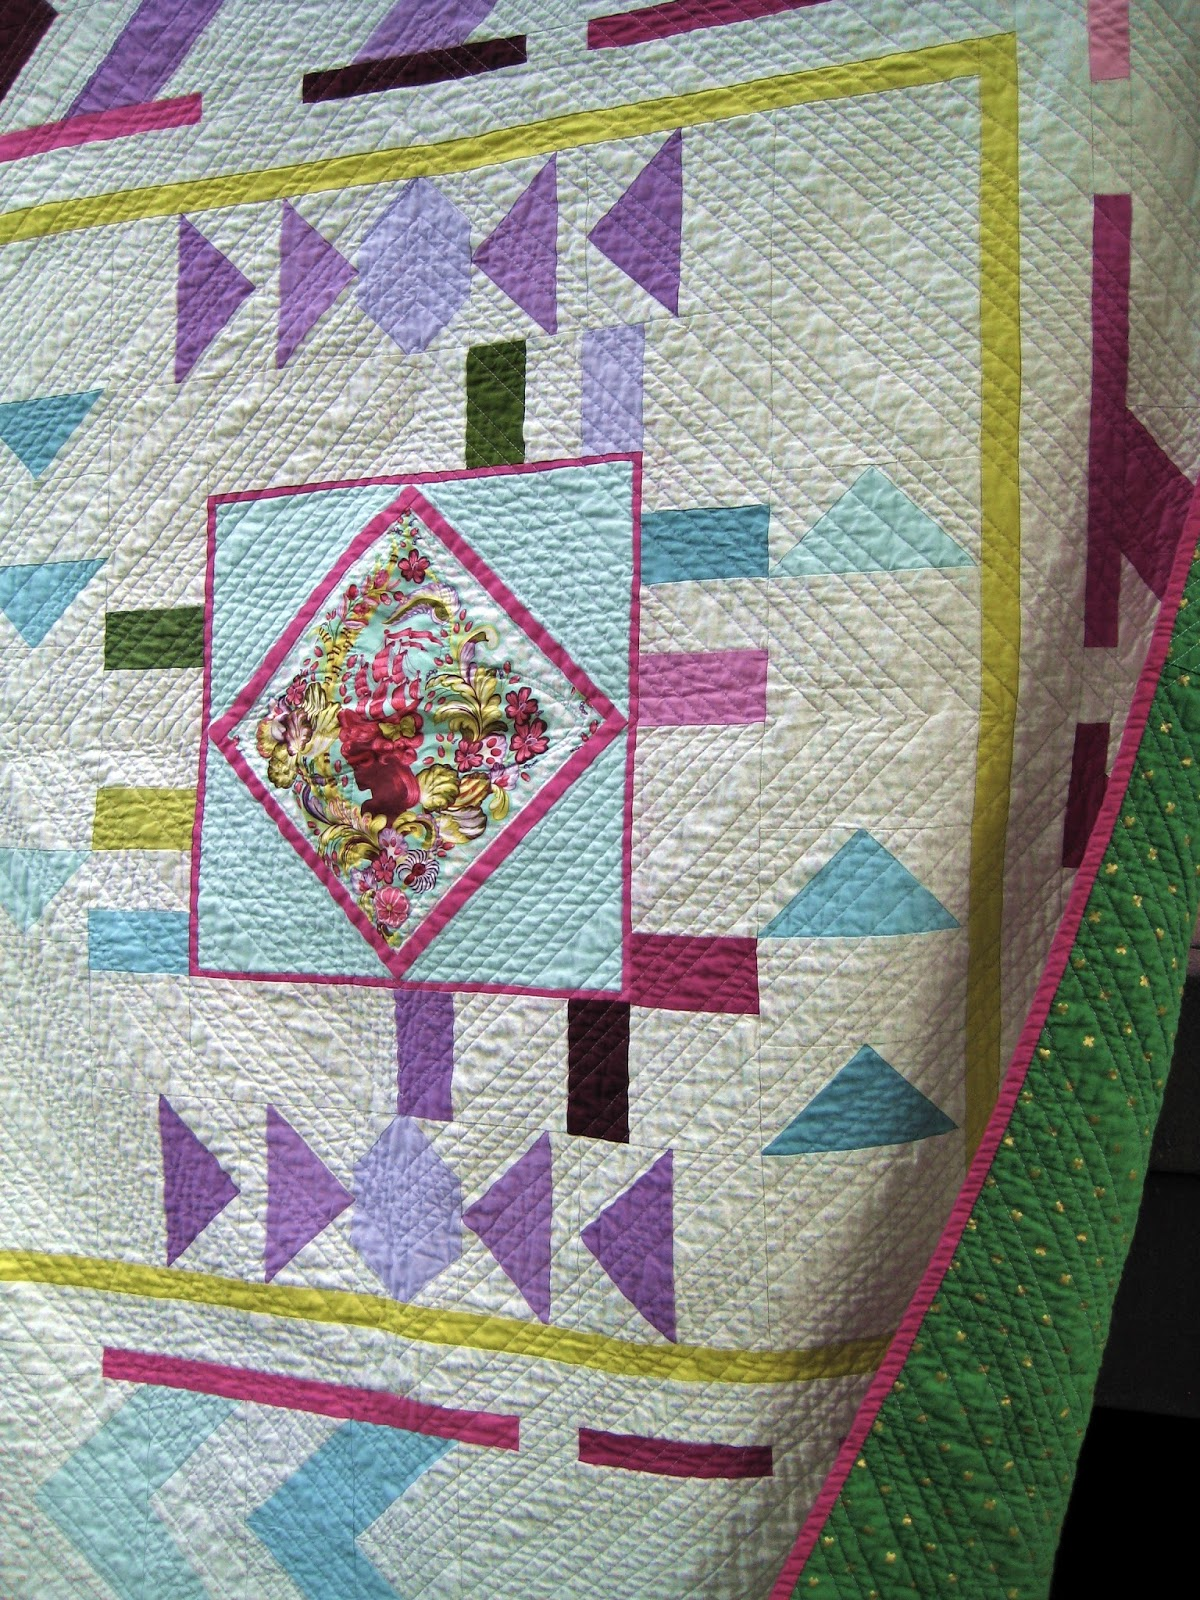 at of quilting quilts pictures mainely monterrey client main love quilt medallion long sept arm services completed